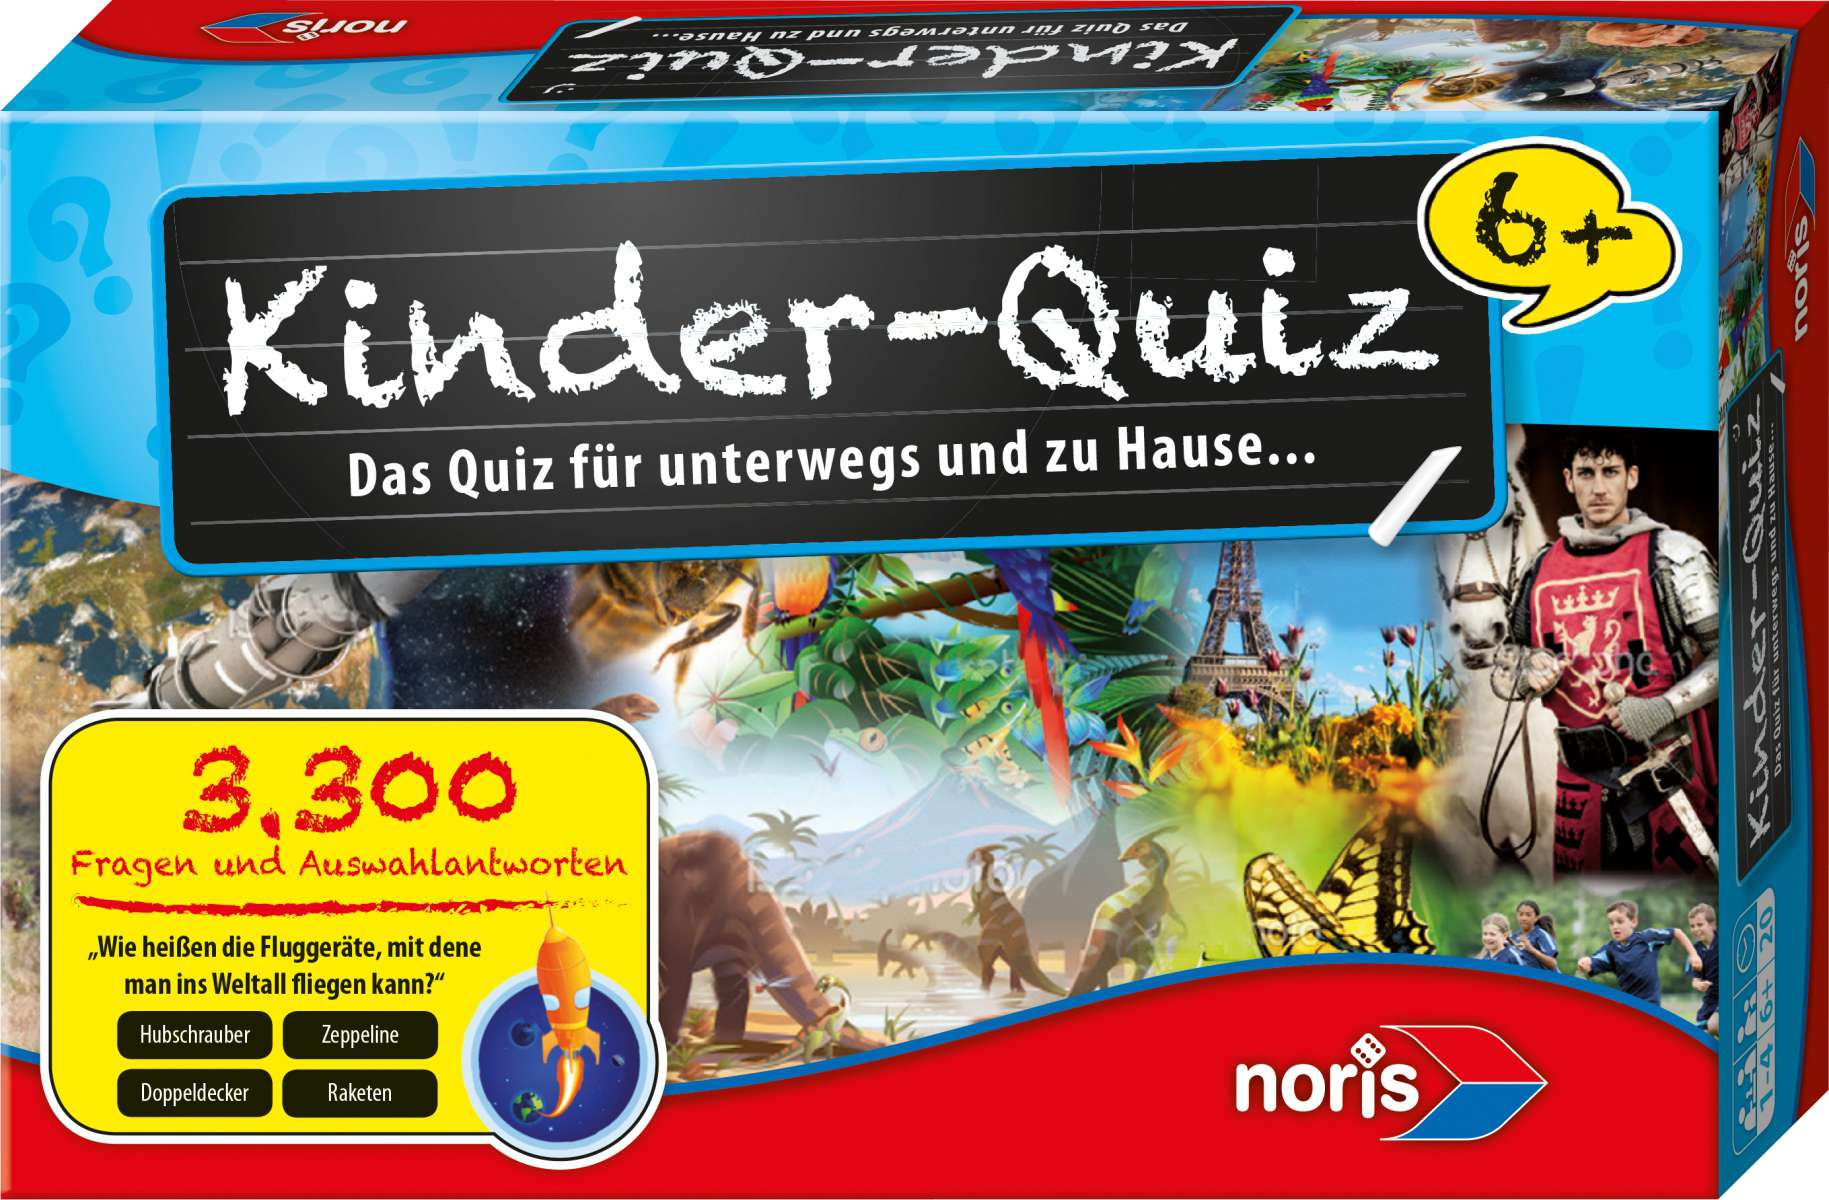 Kinderquiz f�¼r schlaue Kids